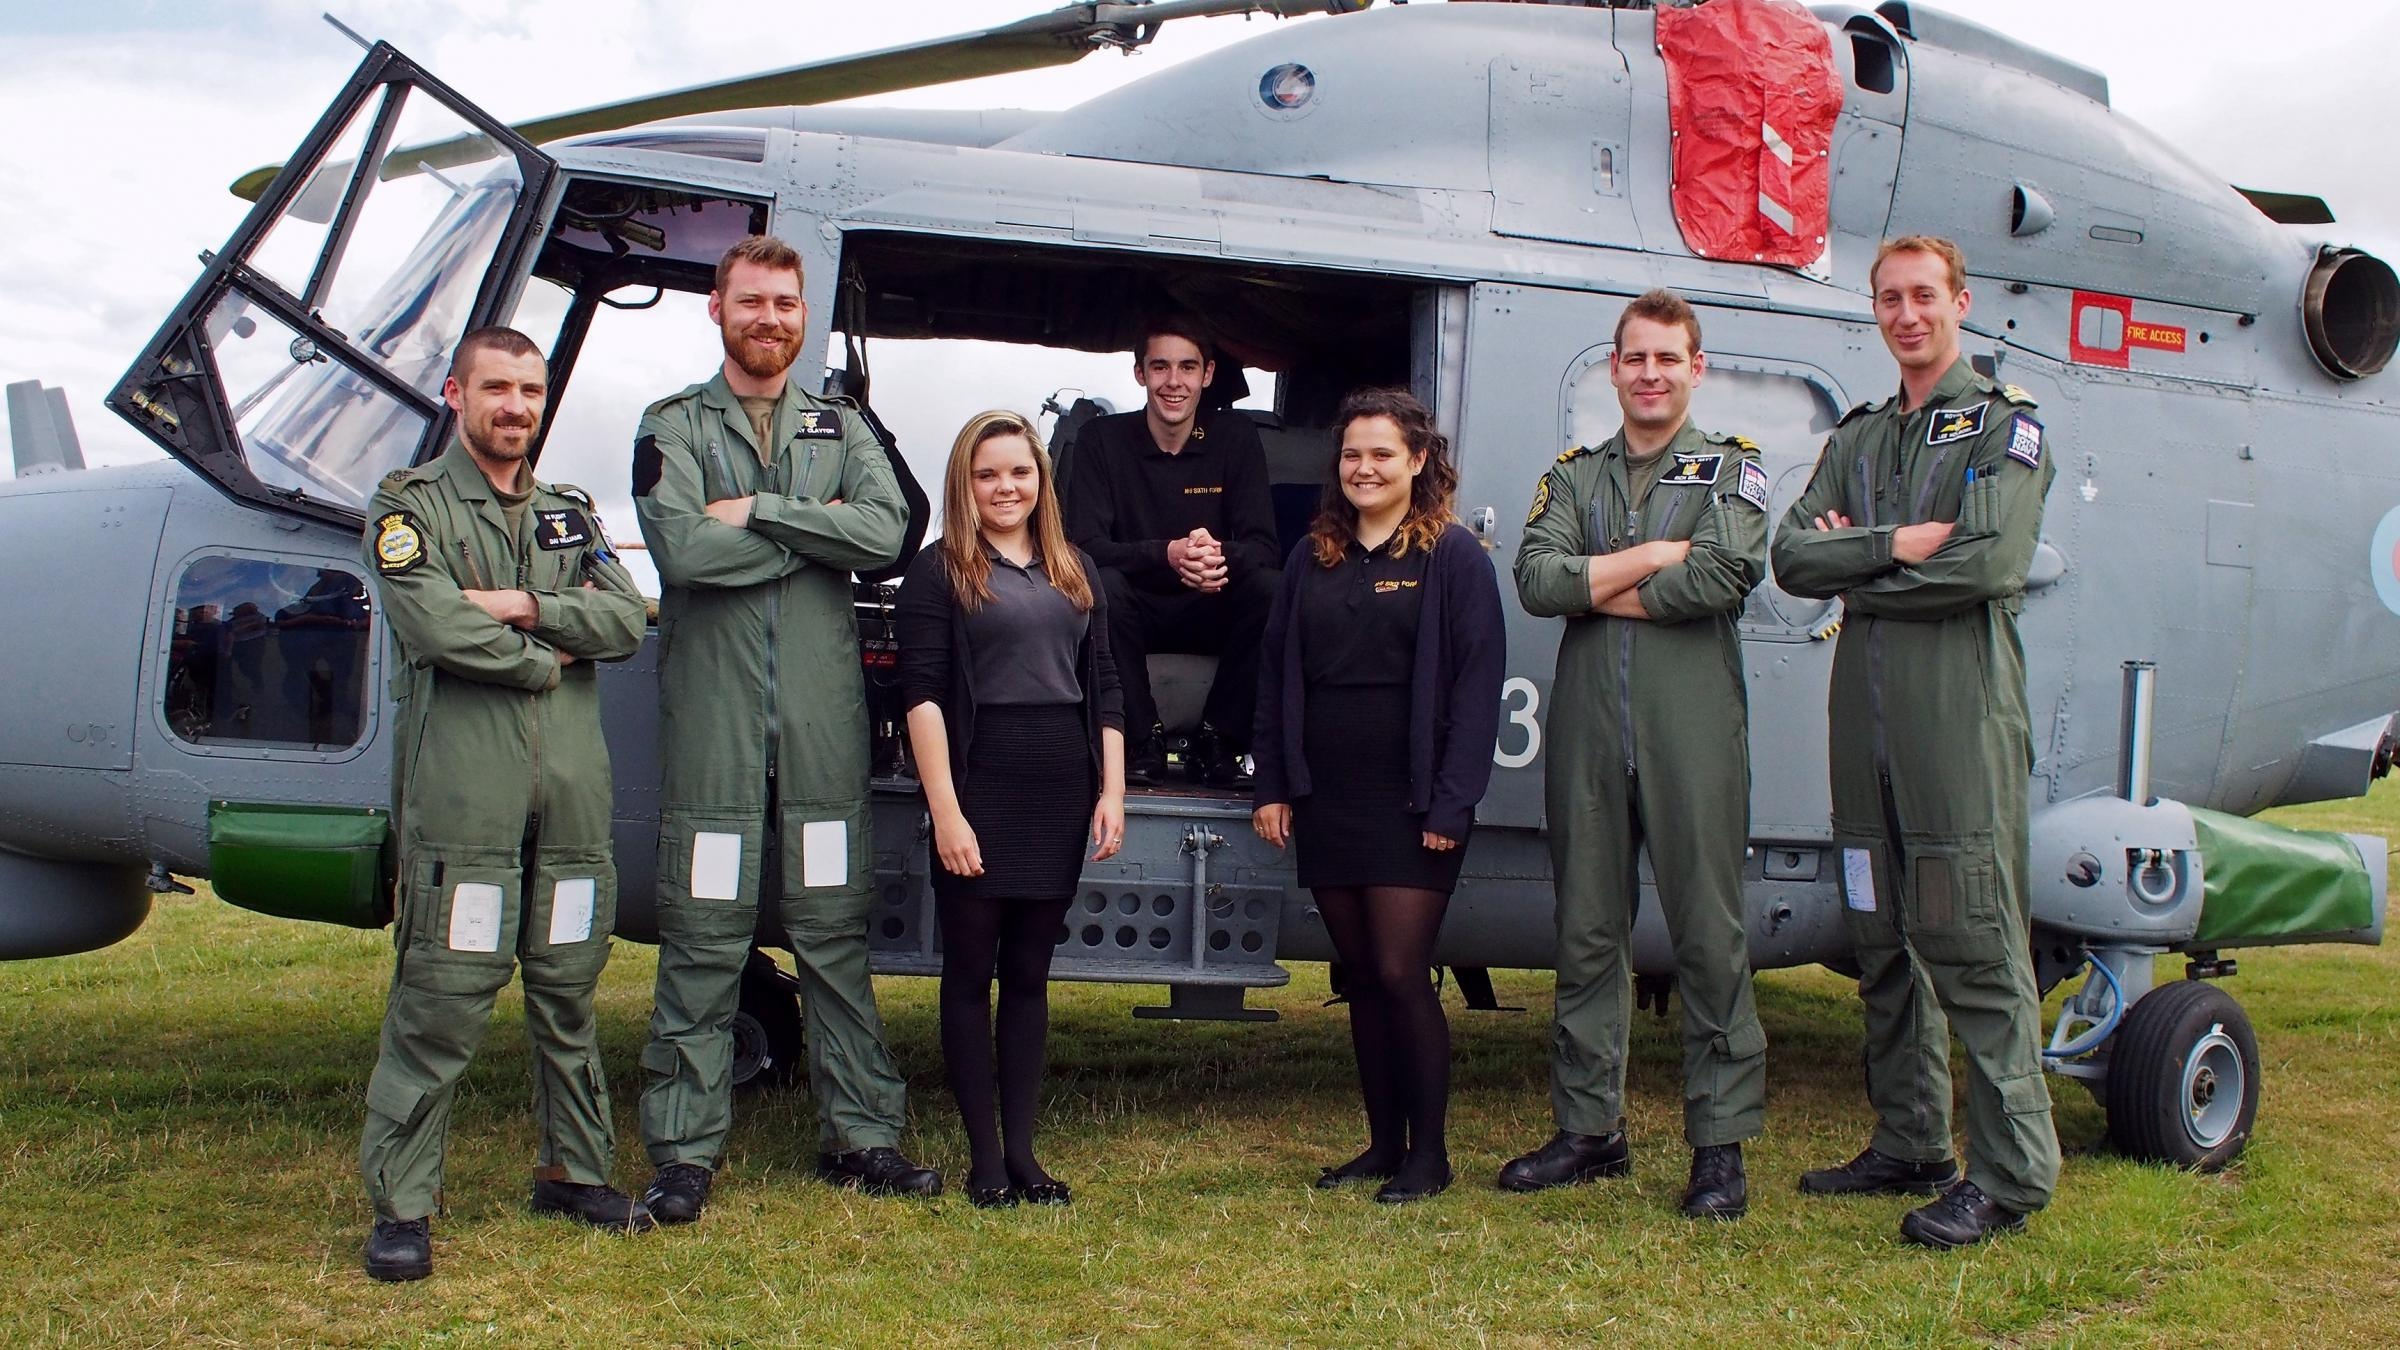 MEET THE CREW: Nirvana Thomas, Cerys Radcliffe and Ryan Beckerleg representing Milford Haven sixth form, with Petty Officer aircraft engineer Dai Williams, observer Rich Bell, pilot Lee Holburn and leading air engineering technician (mechanical) Clay Clay